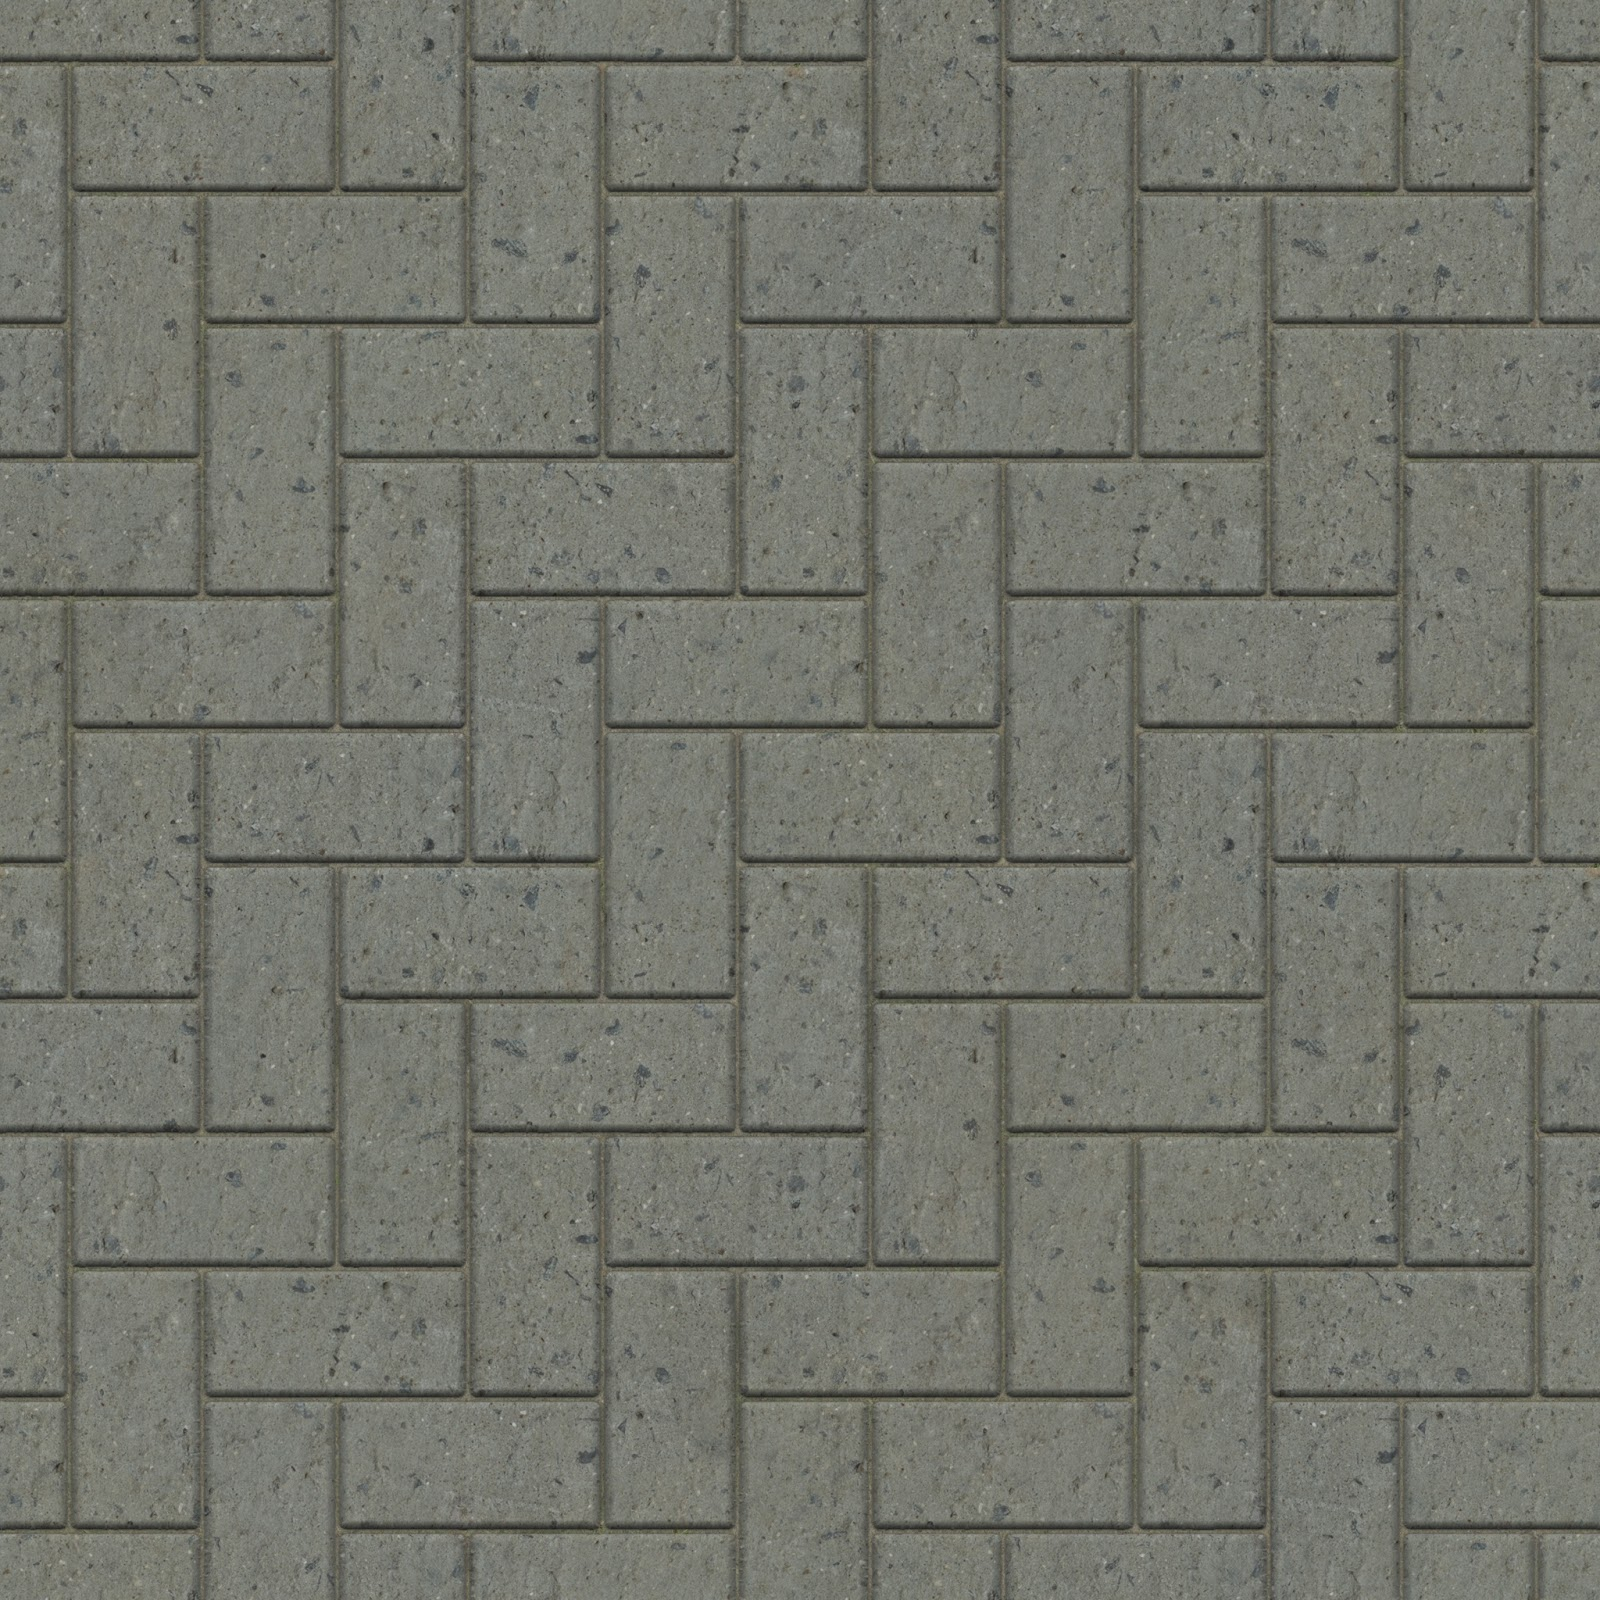 High Resolution Seamless Textures: Brick tiles pavement ...